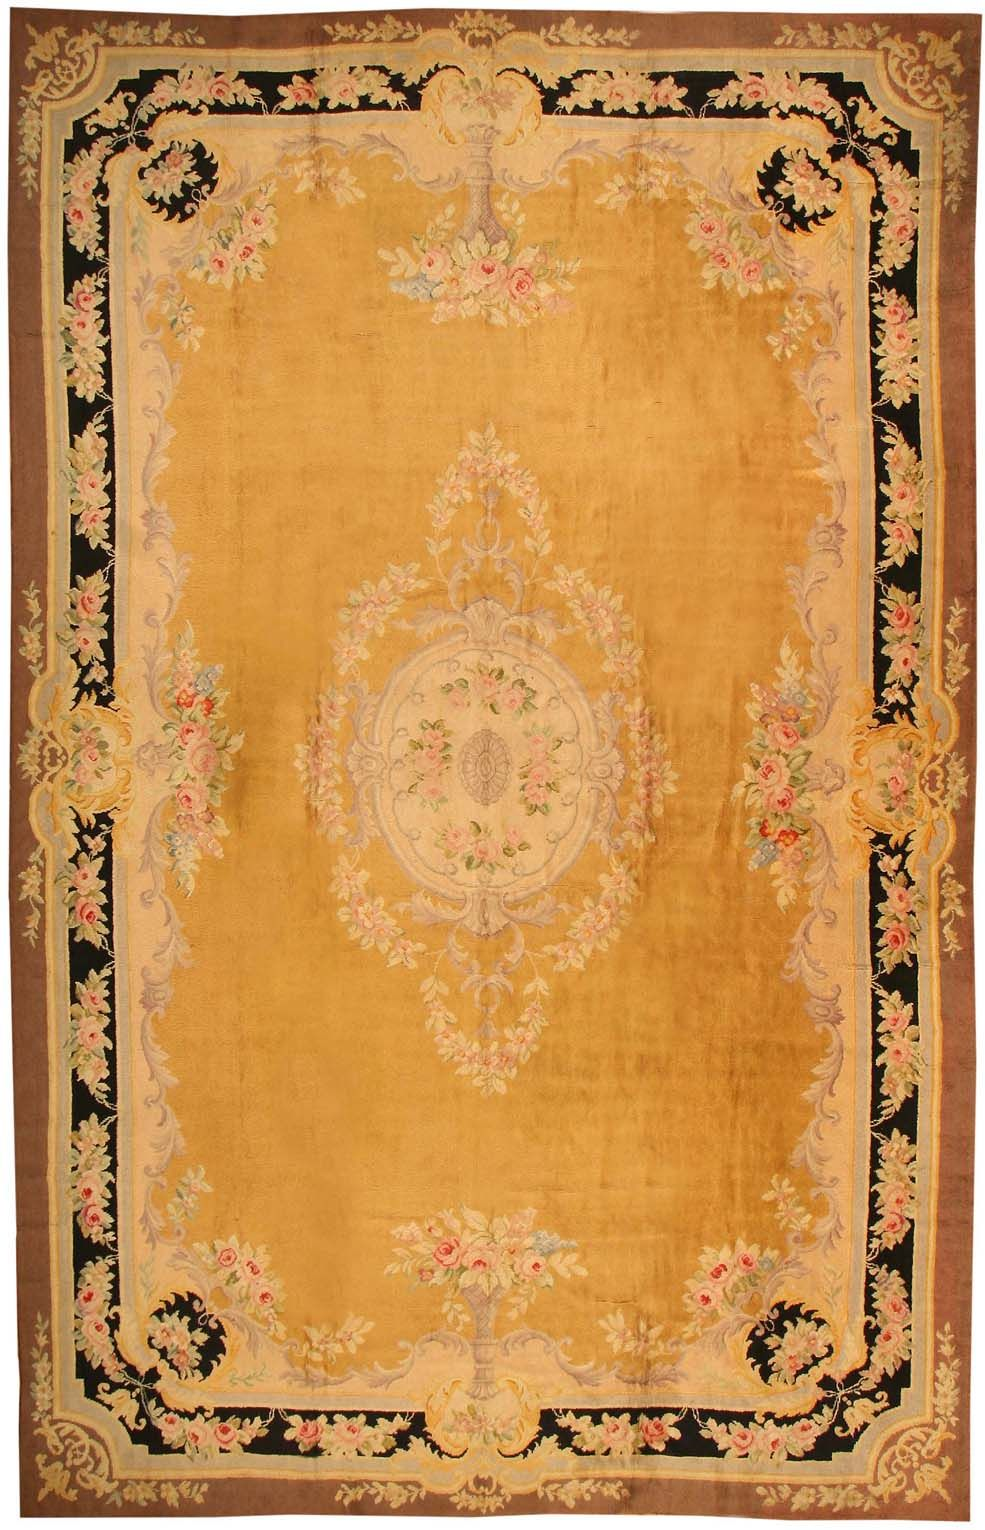 View This Beautiful Antique Spanish Rug 43430 From Nazmiyal S Fine Rugs And Decorative Carpet Collection